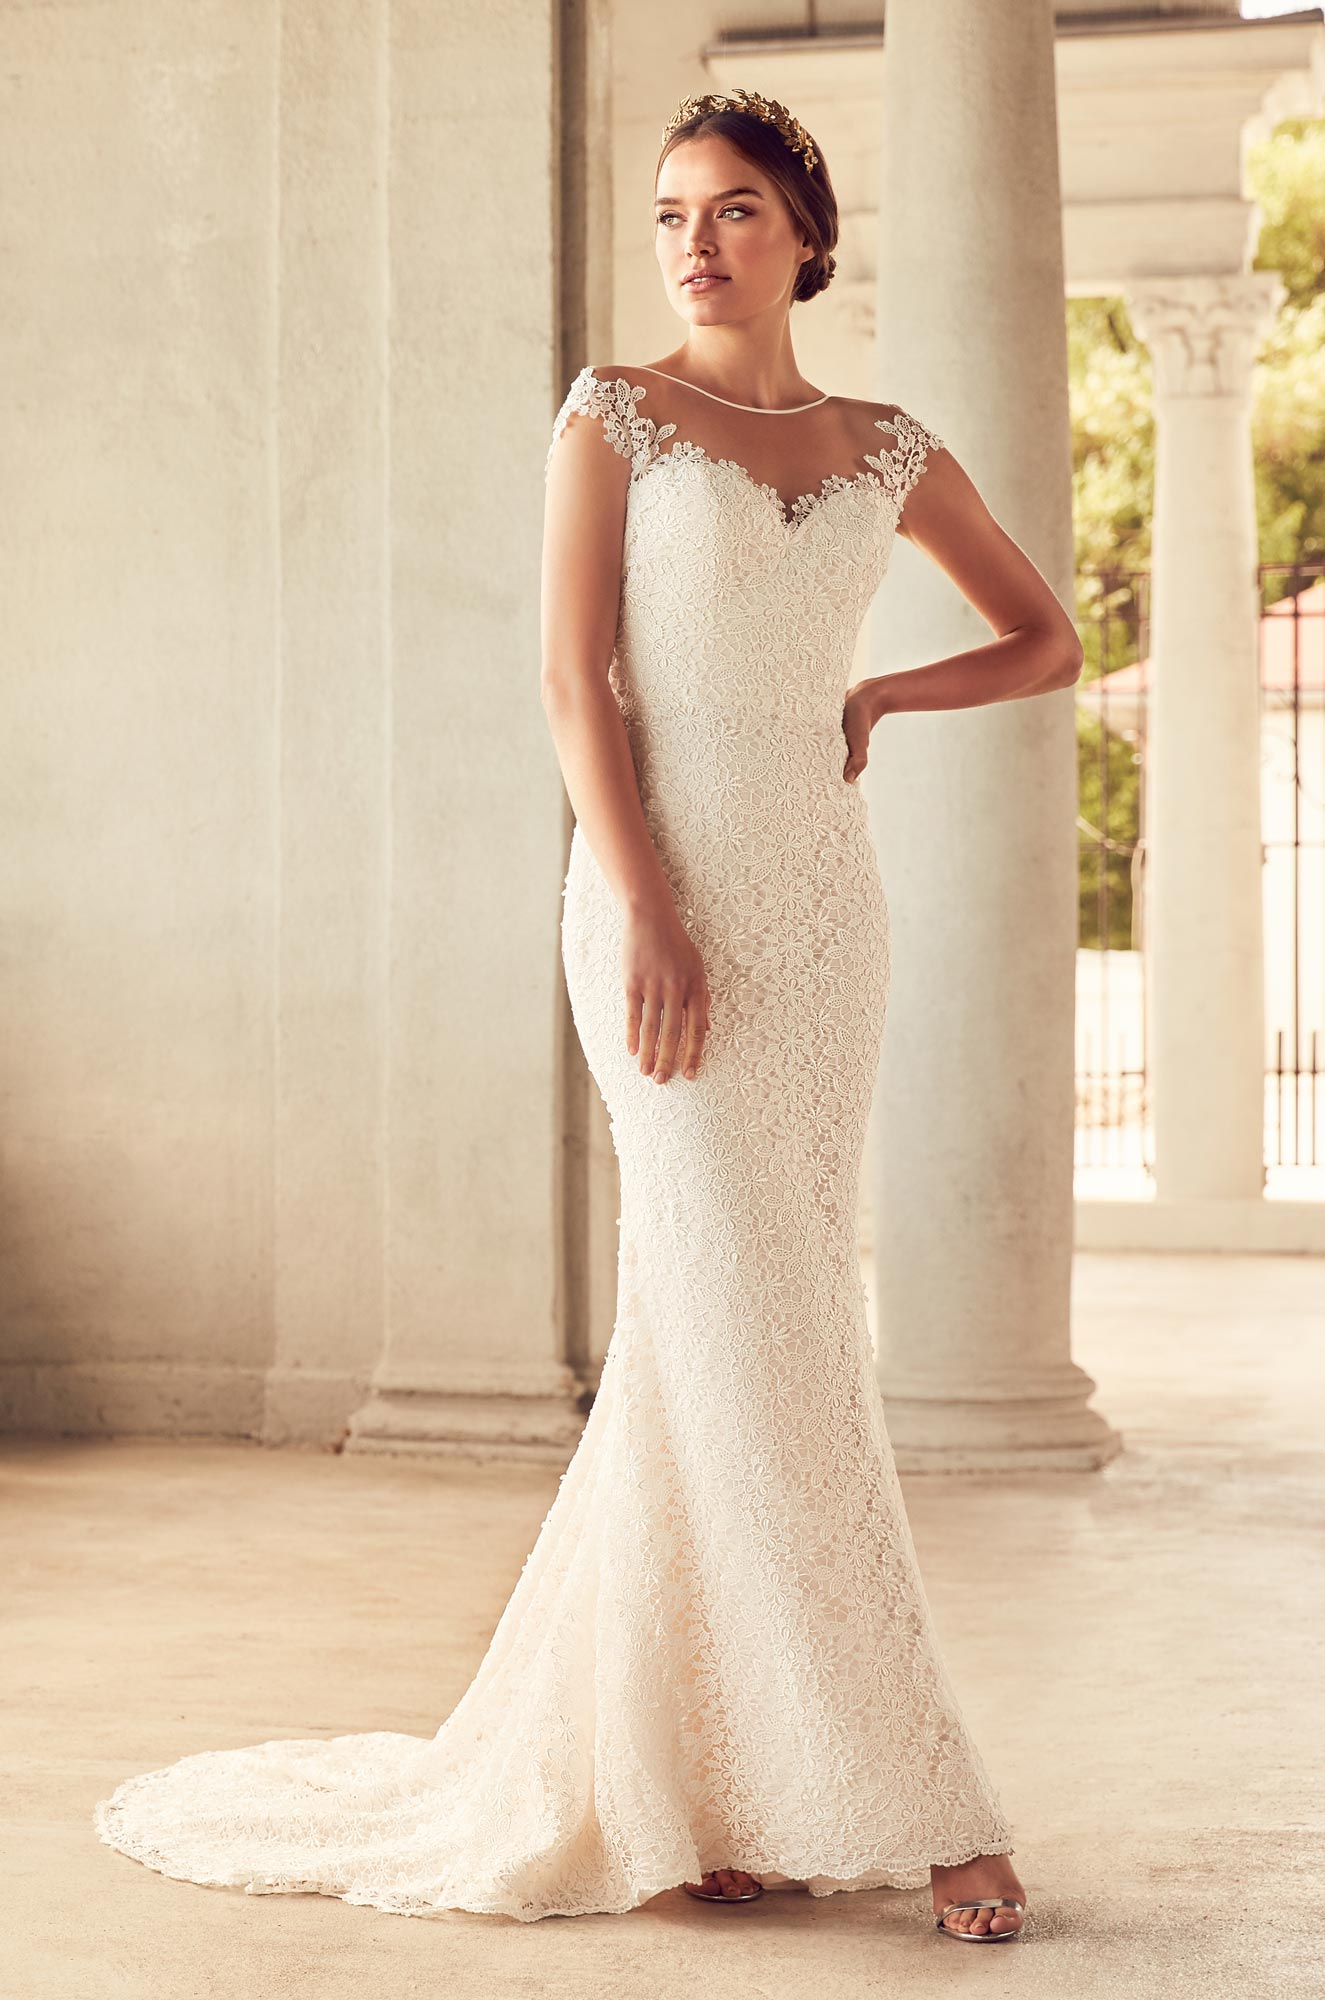 Fitted Lace Wedding Dress – Style #4786 | Paloma Blanca